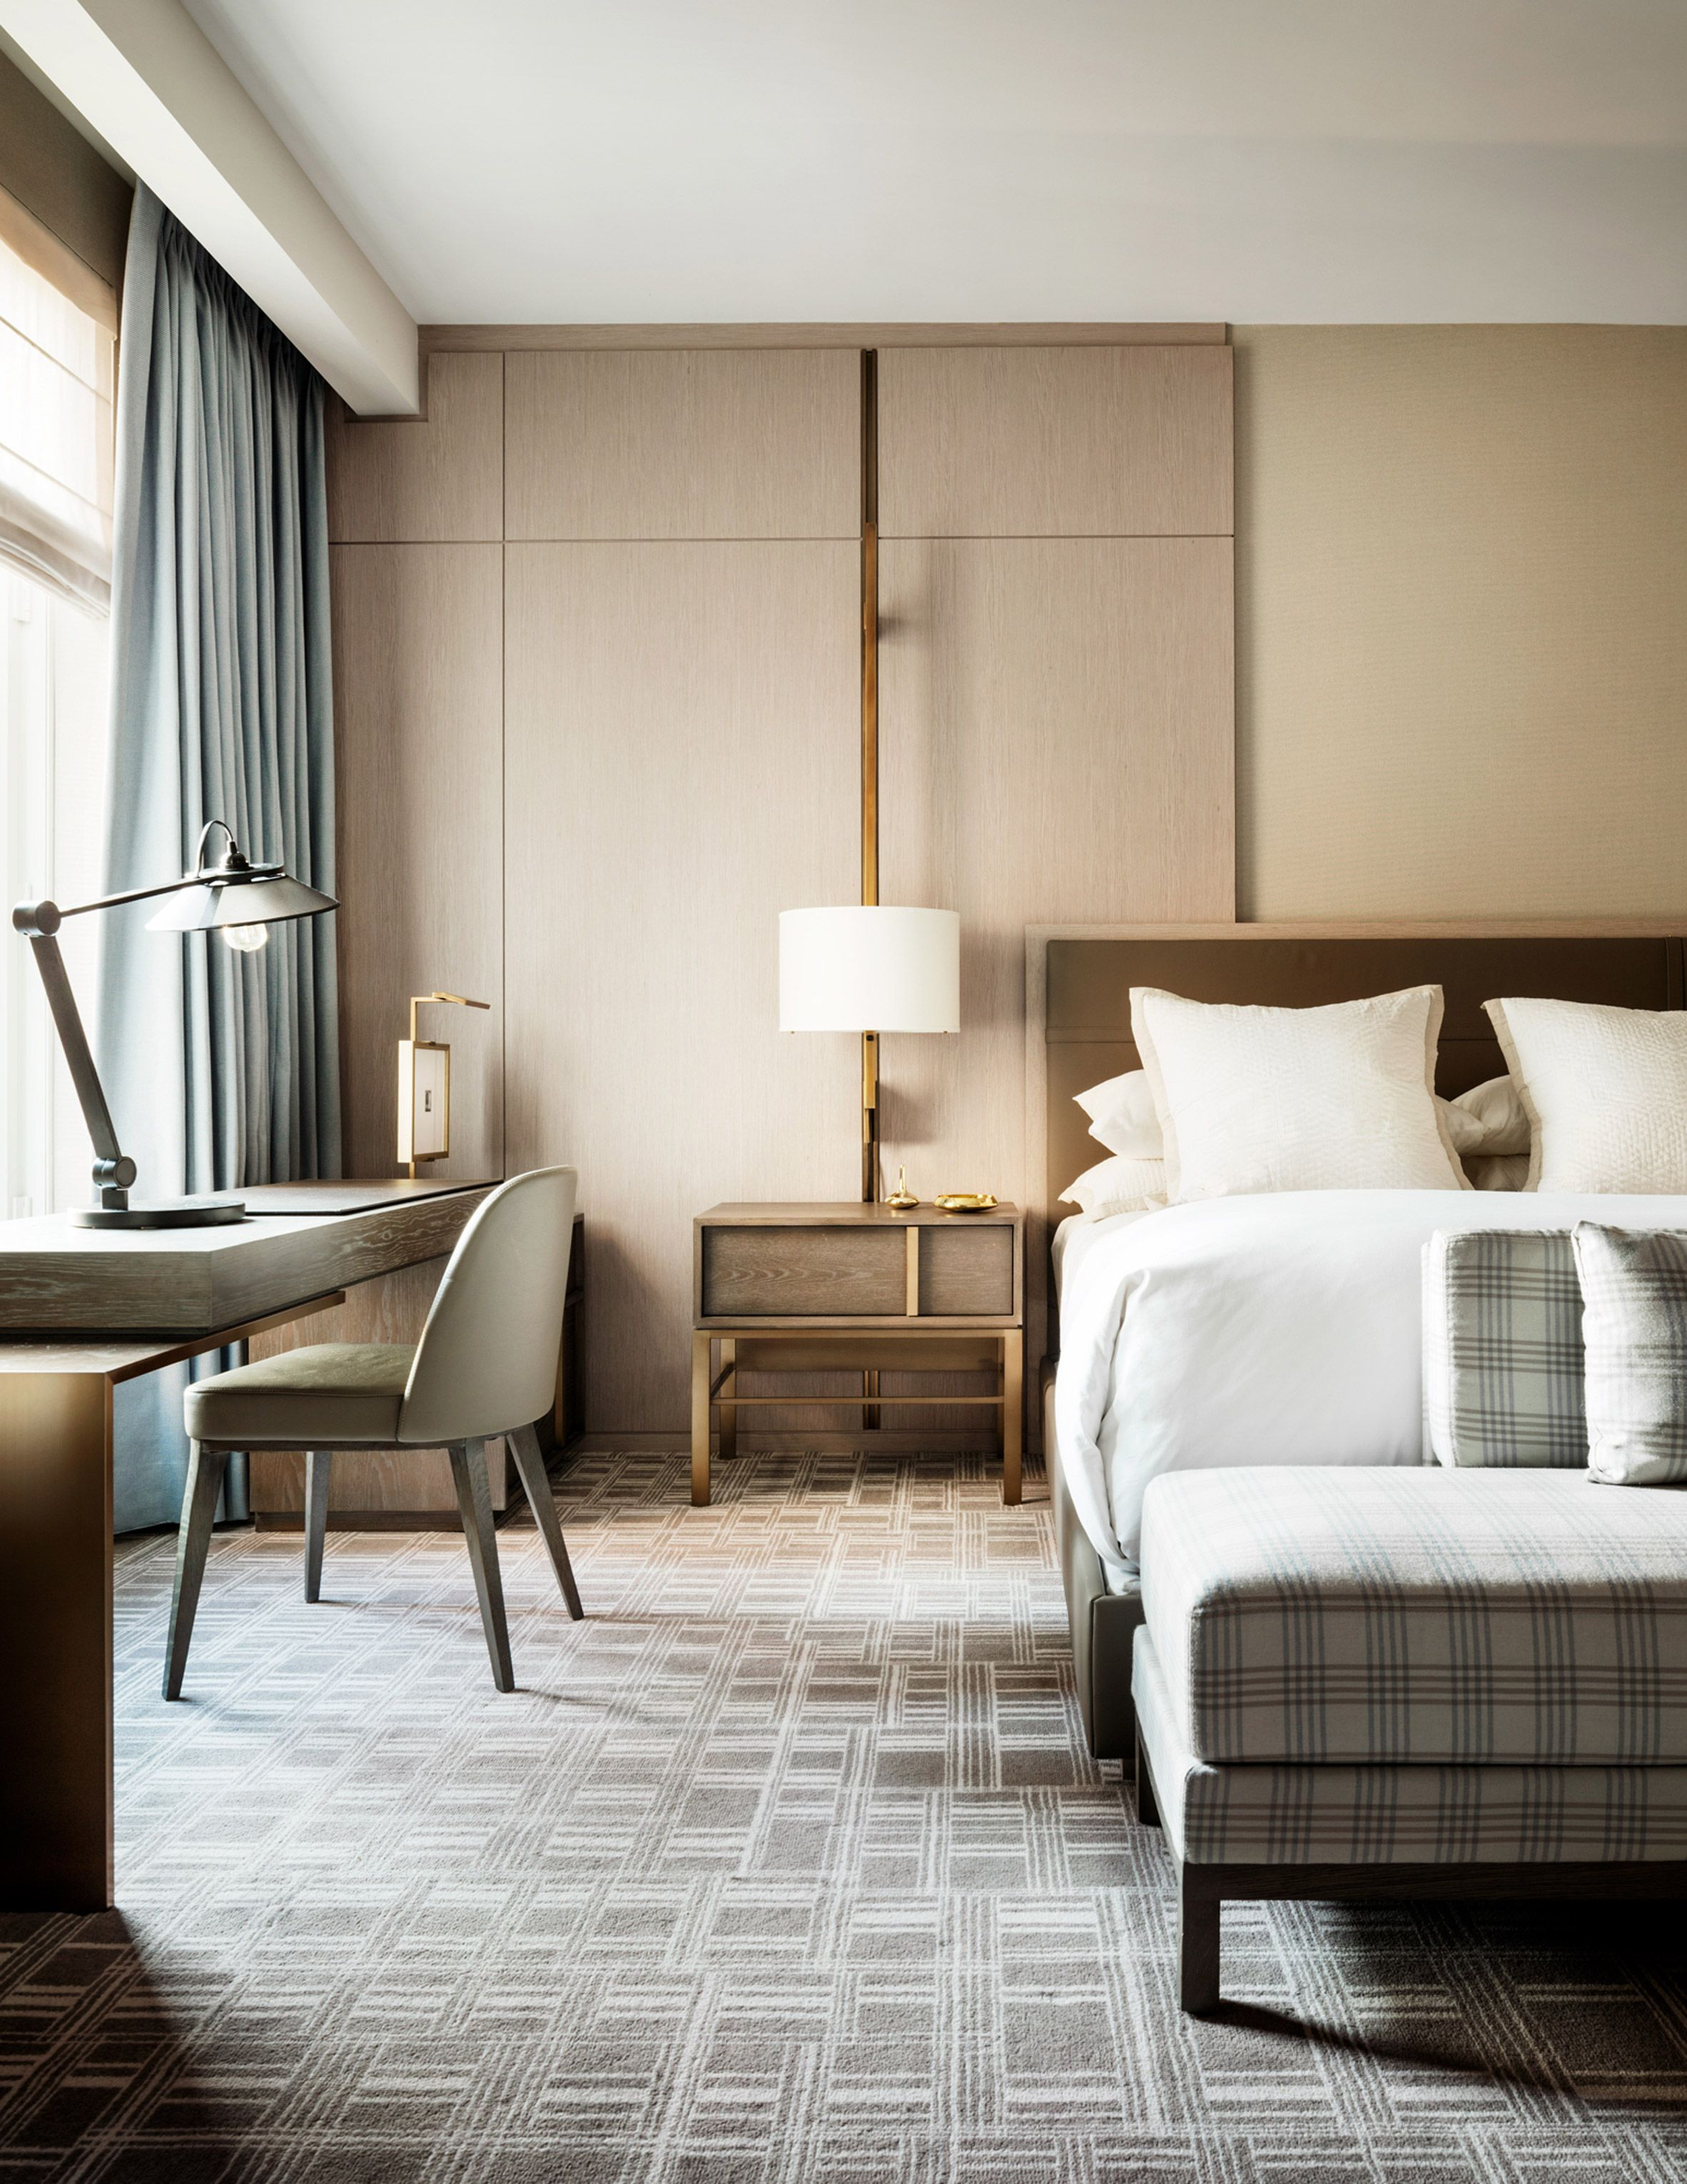 Hotel Room Design: Four Seasons Downtown By Yabu Pushelberg